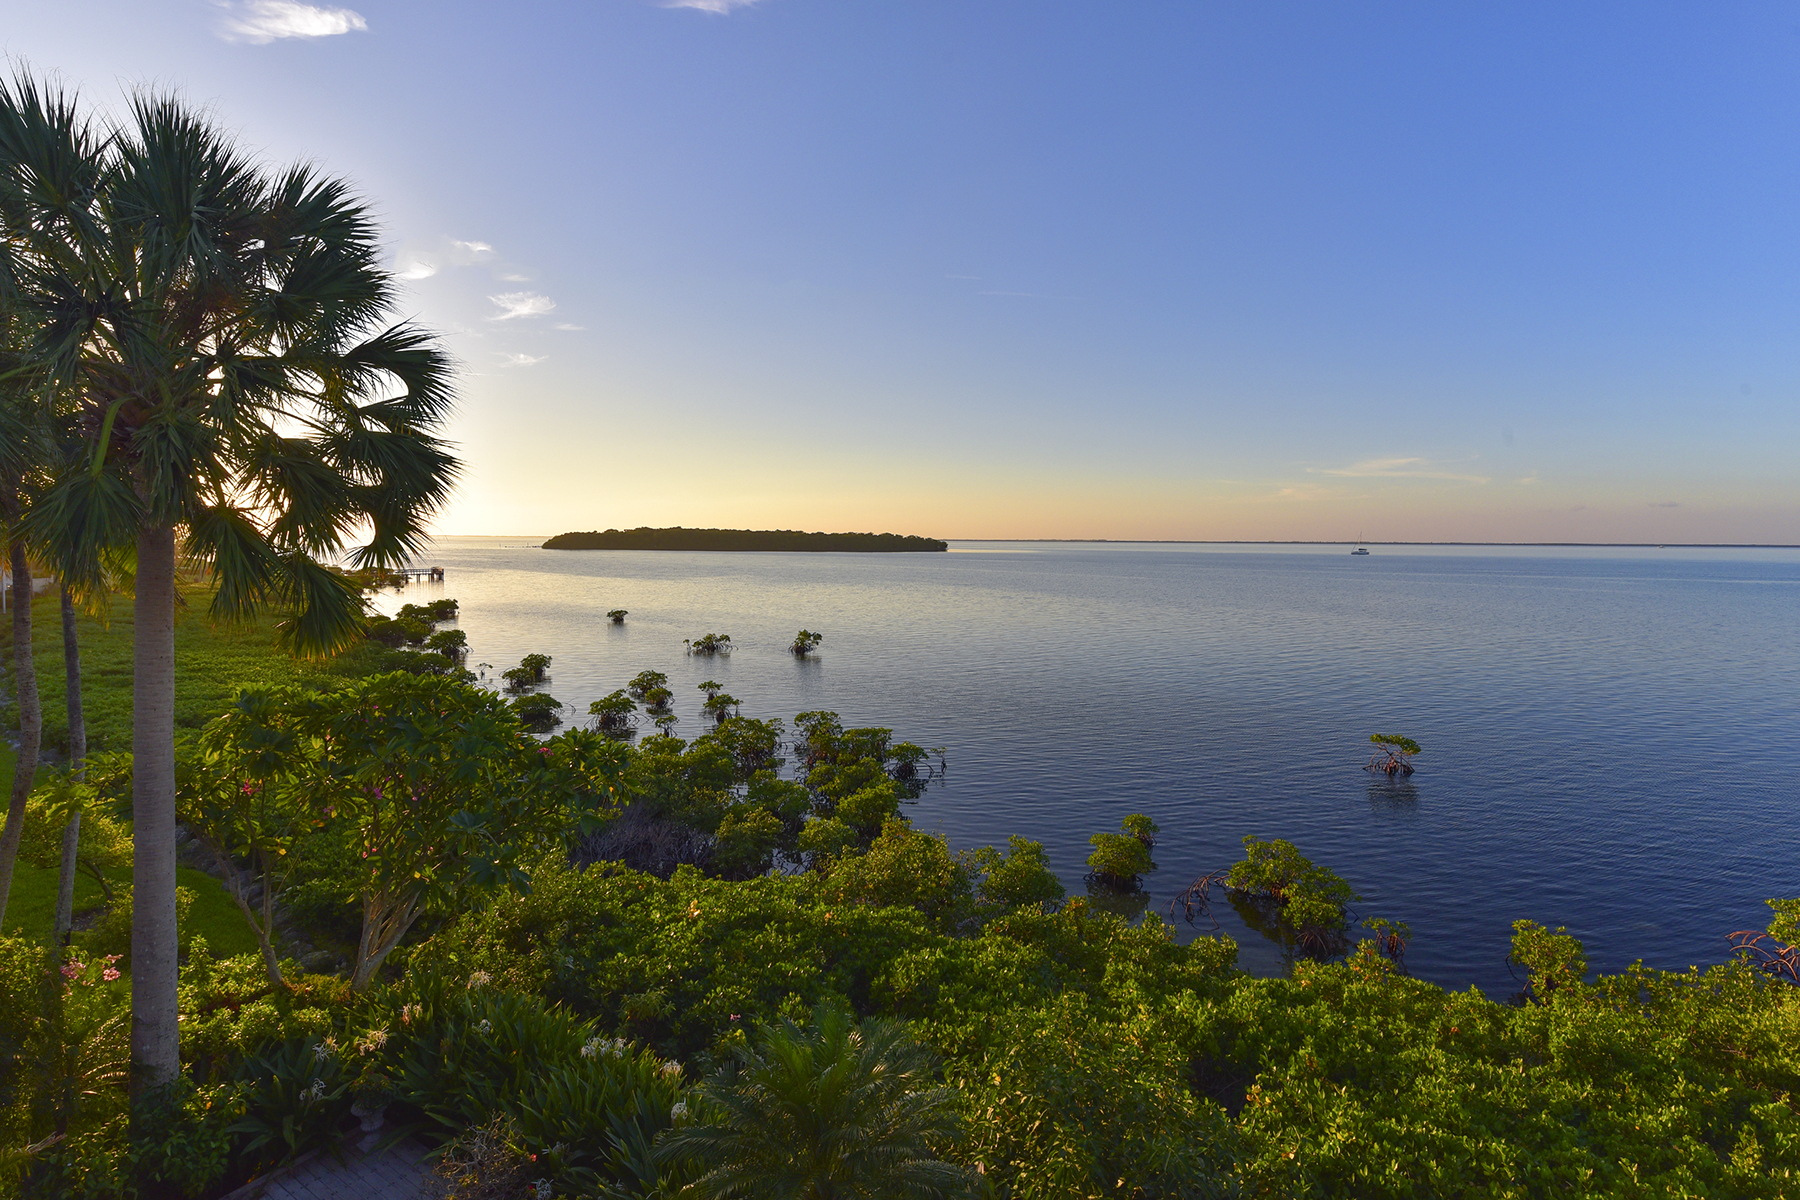 for Sale at 10 Cannon Point, Key Largo, FL Key Largo, Florida 33037 United States